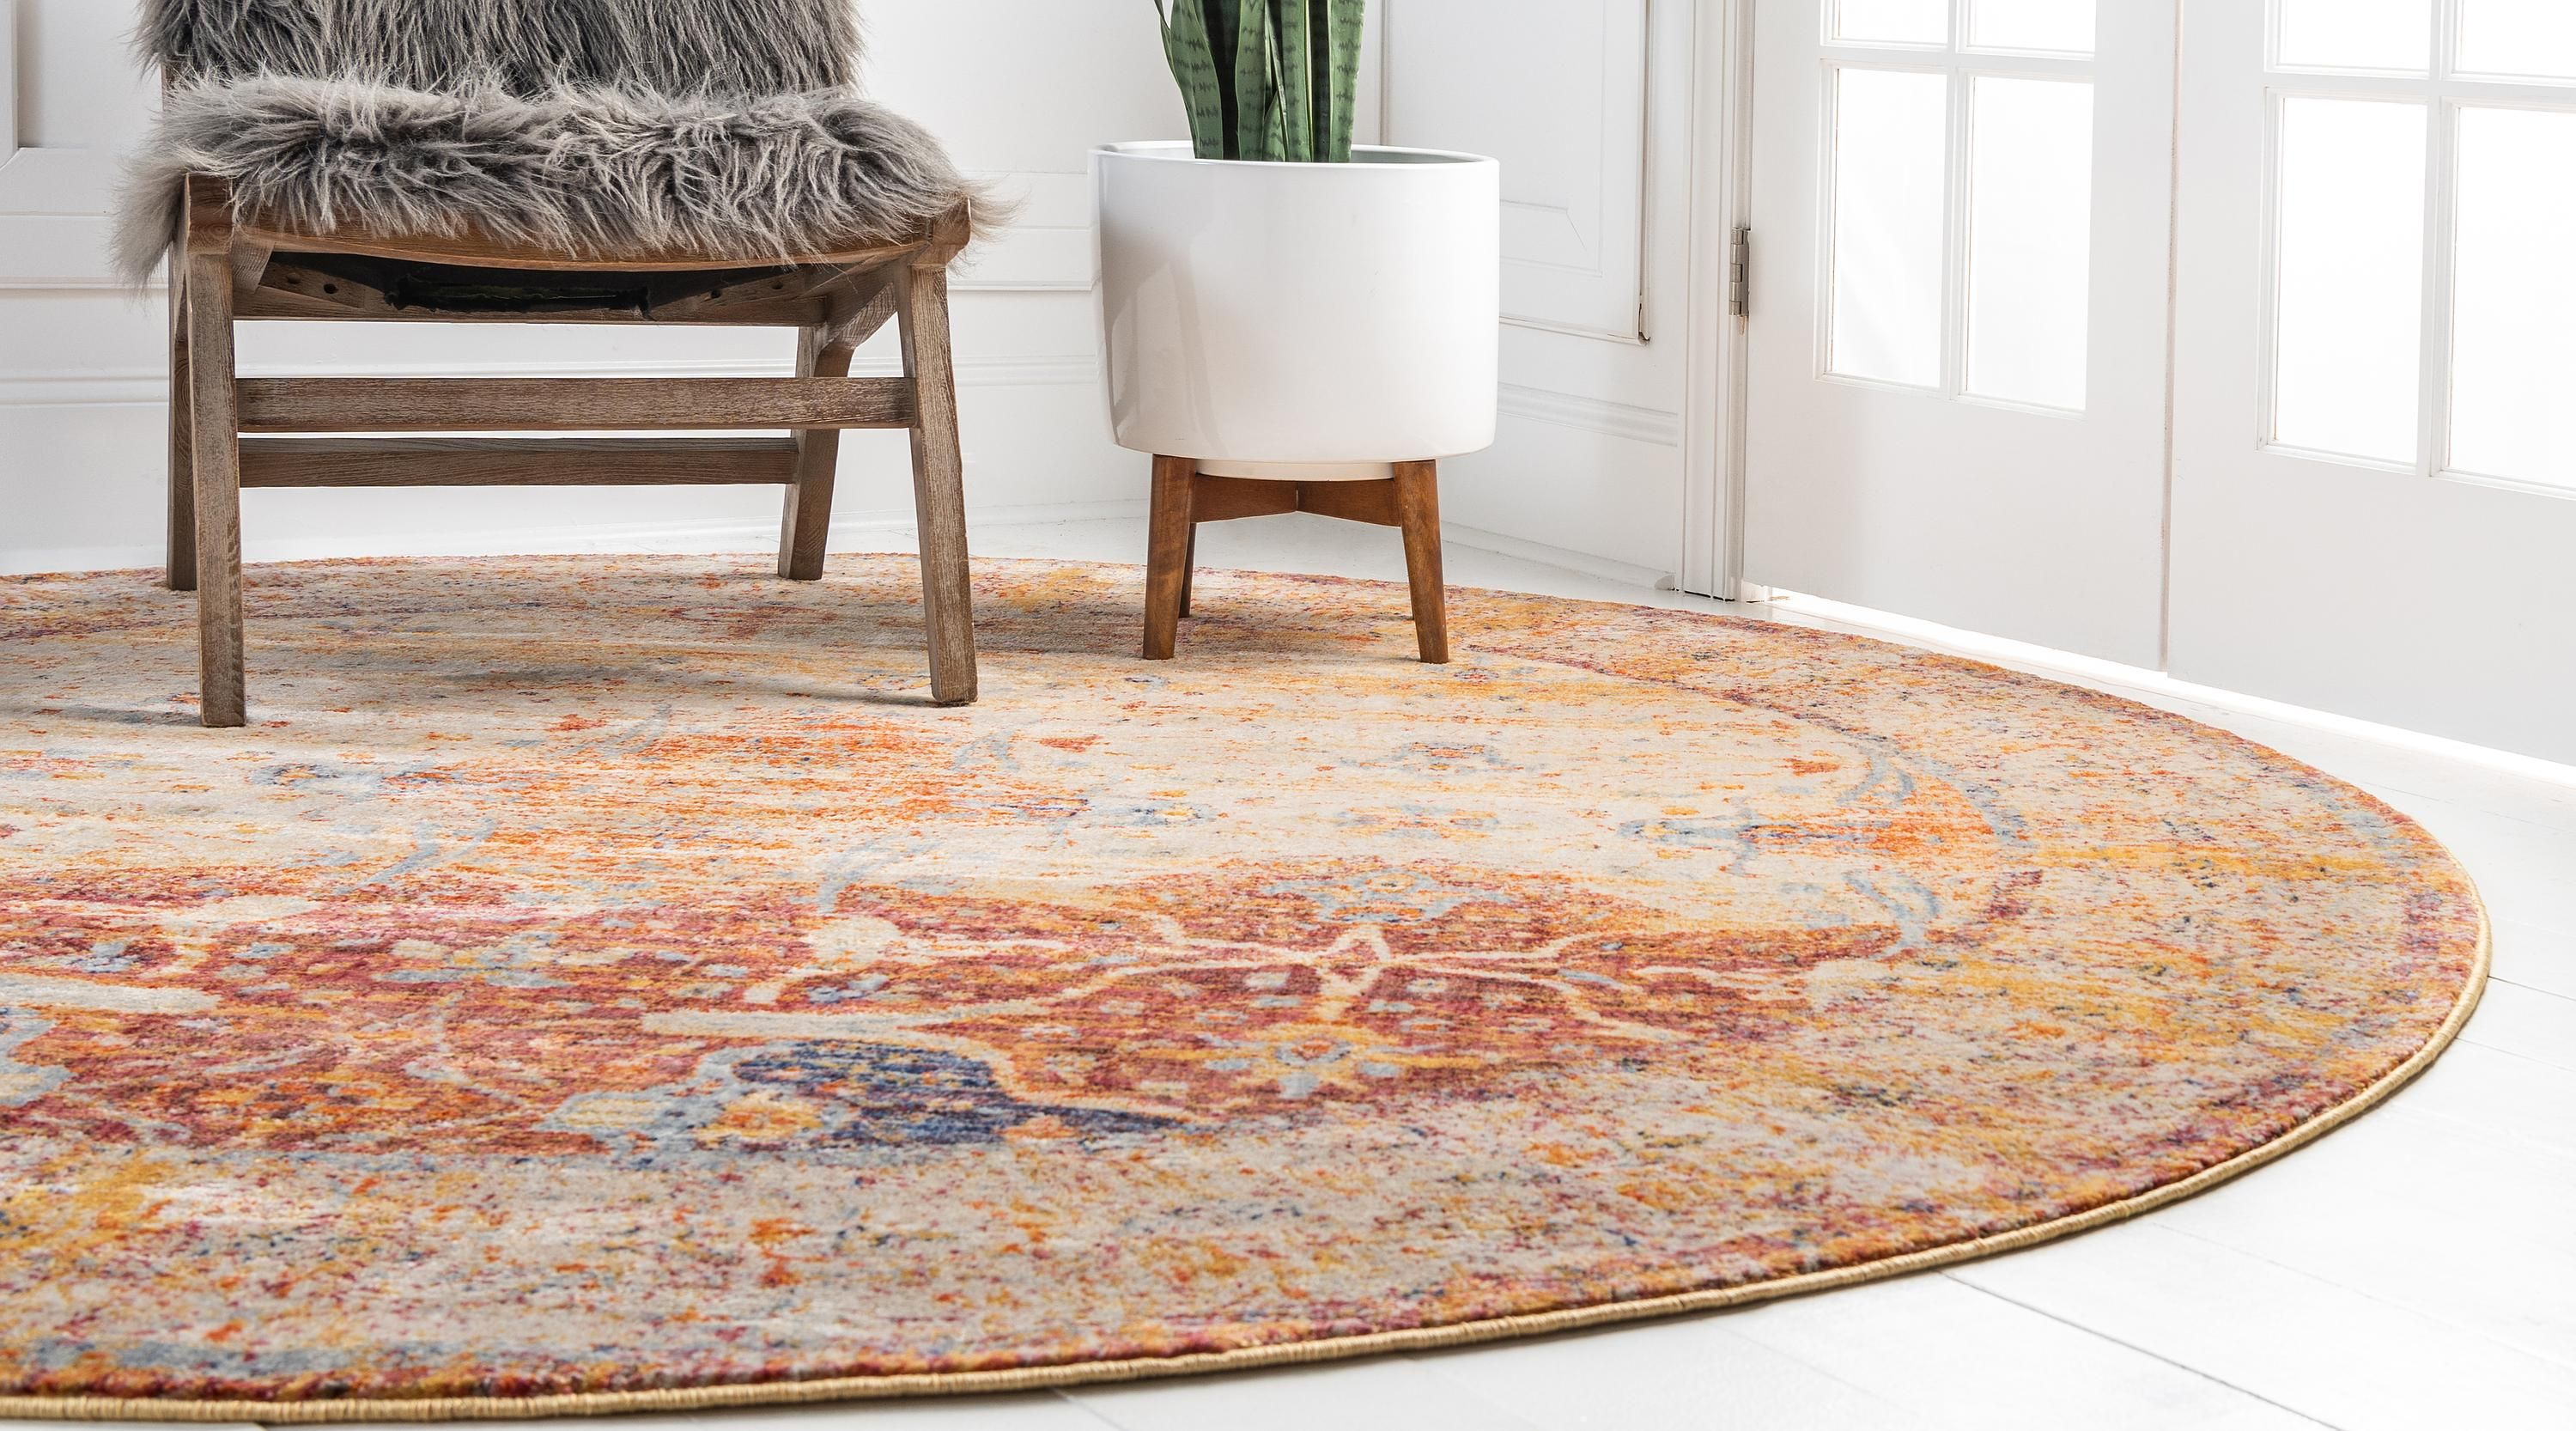 Multicolor 8 X 8 Berkshire Round Rug Sponsored Multicolor